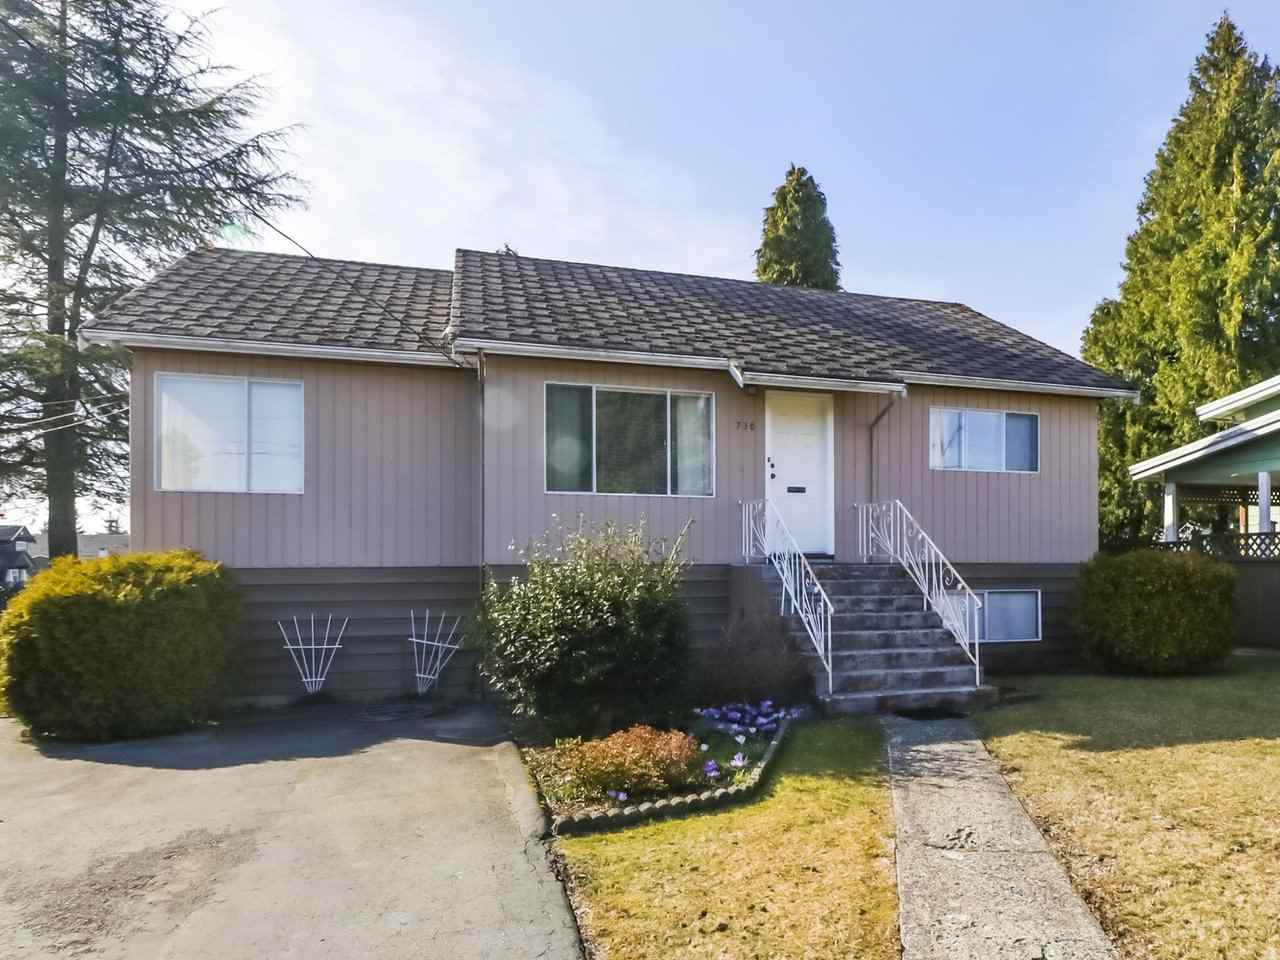 Photo 2: Photos: 730 SCHOOLHOUSE Street in Coquitlam: Central Coquitlam House for sale : MLS®# R2446516